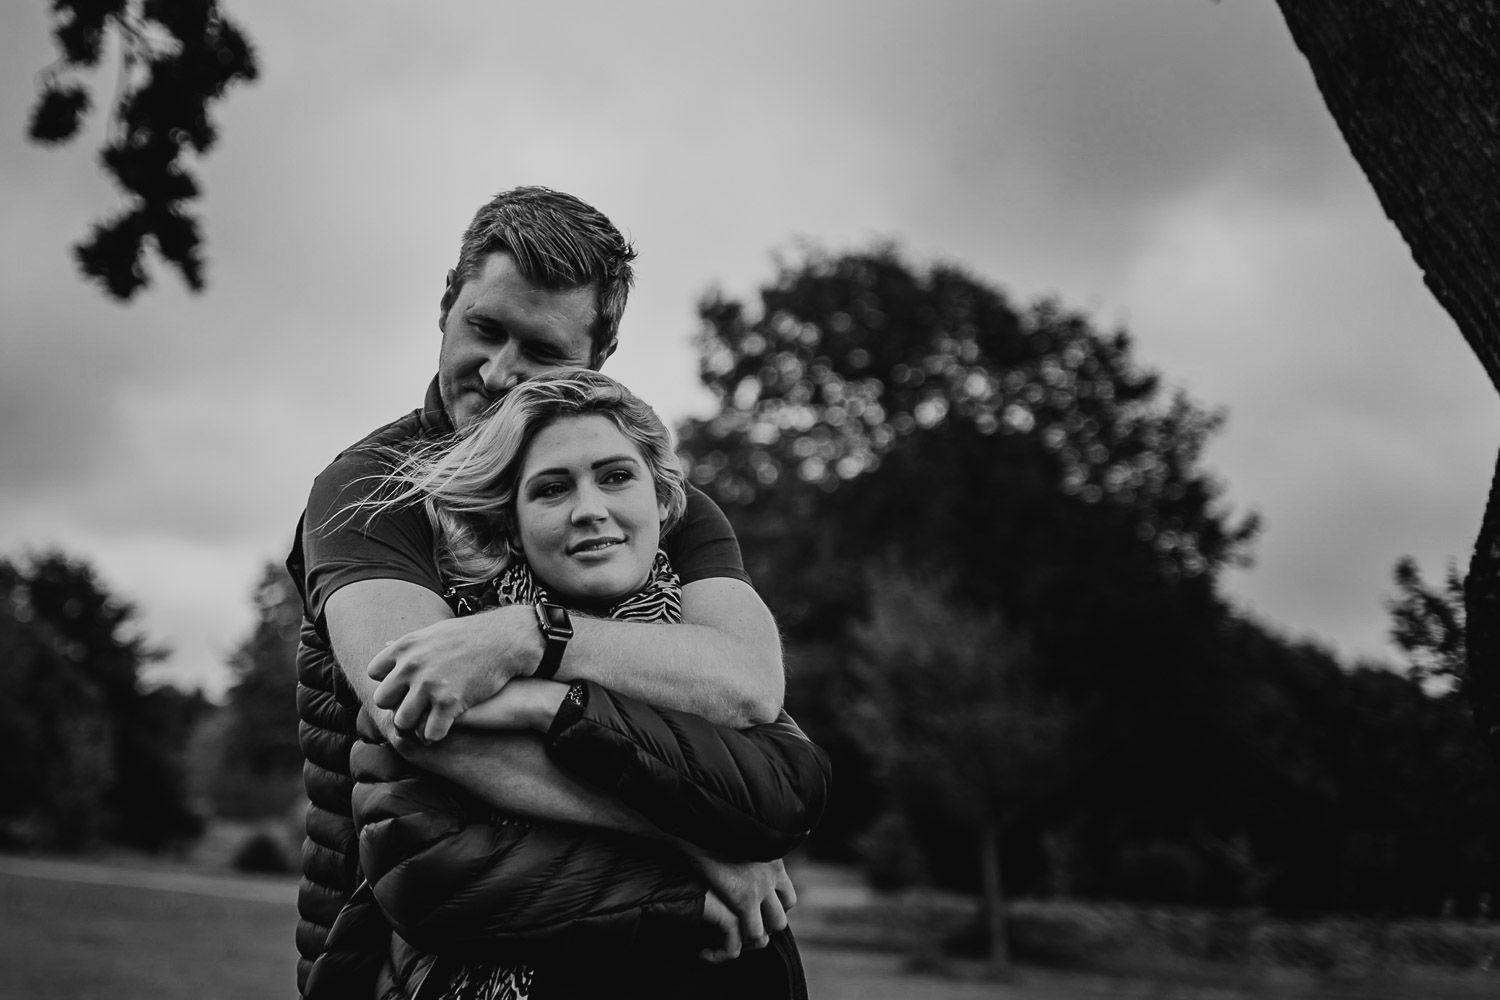 Black and white image of a couple sharing a moment and cuddle in a park. Katherine and her Camera engagement photoshoot.